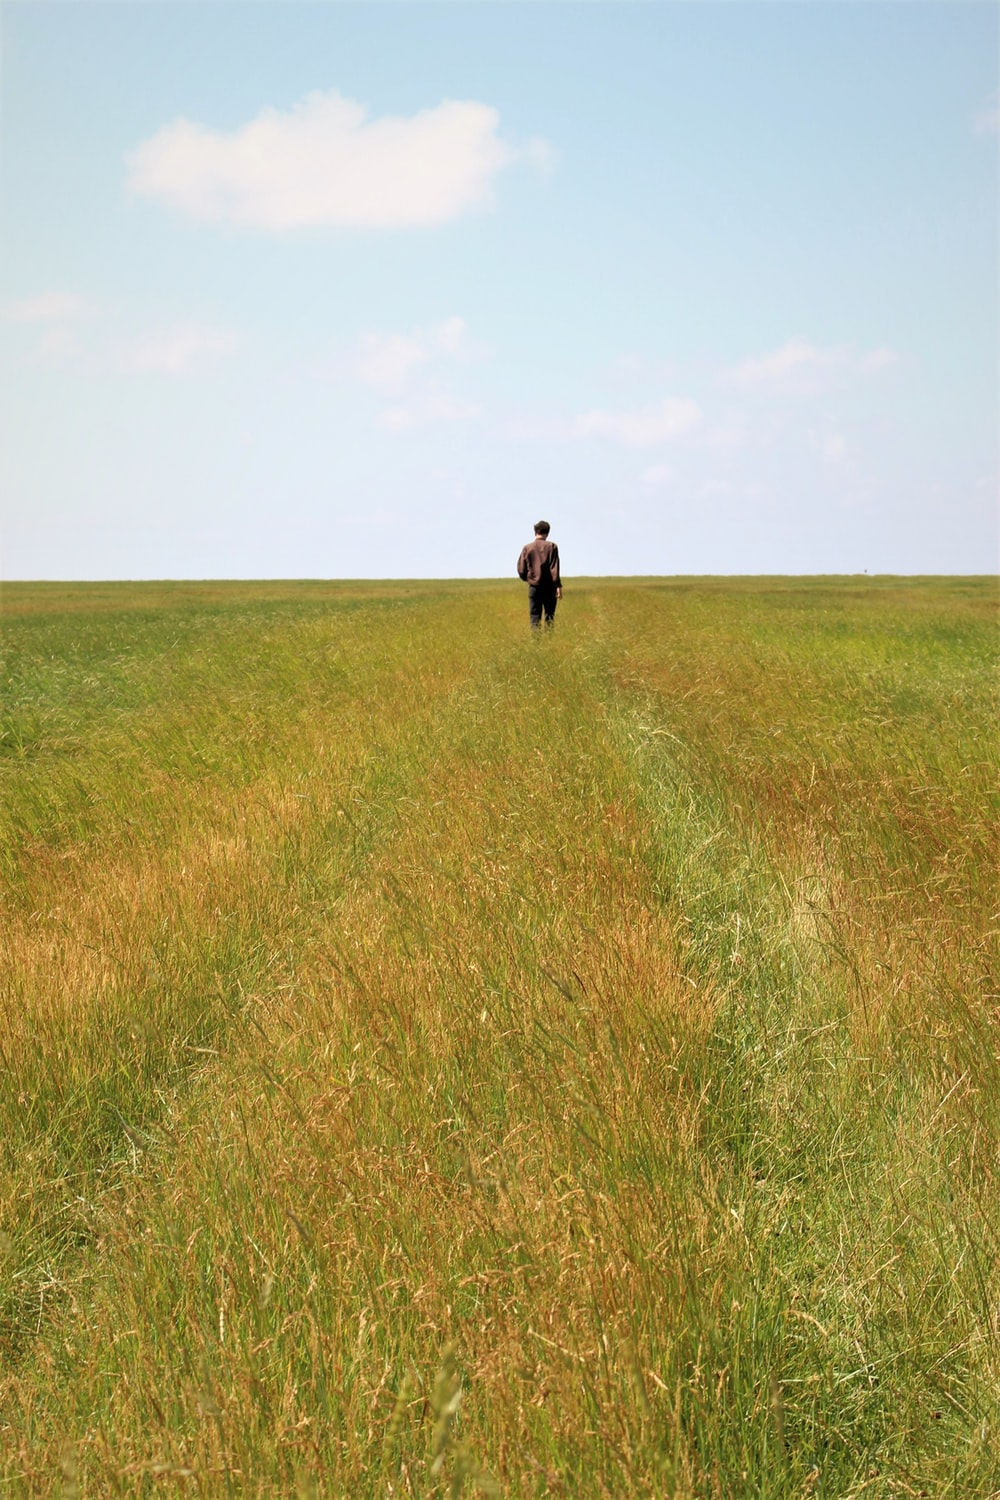 person standing on grass field during daytime